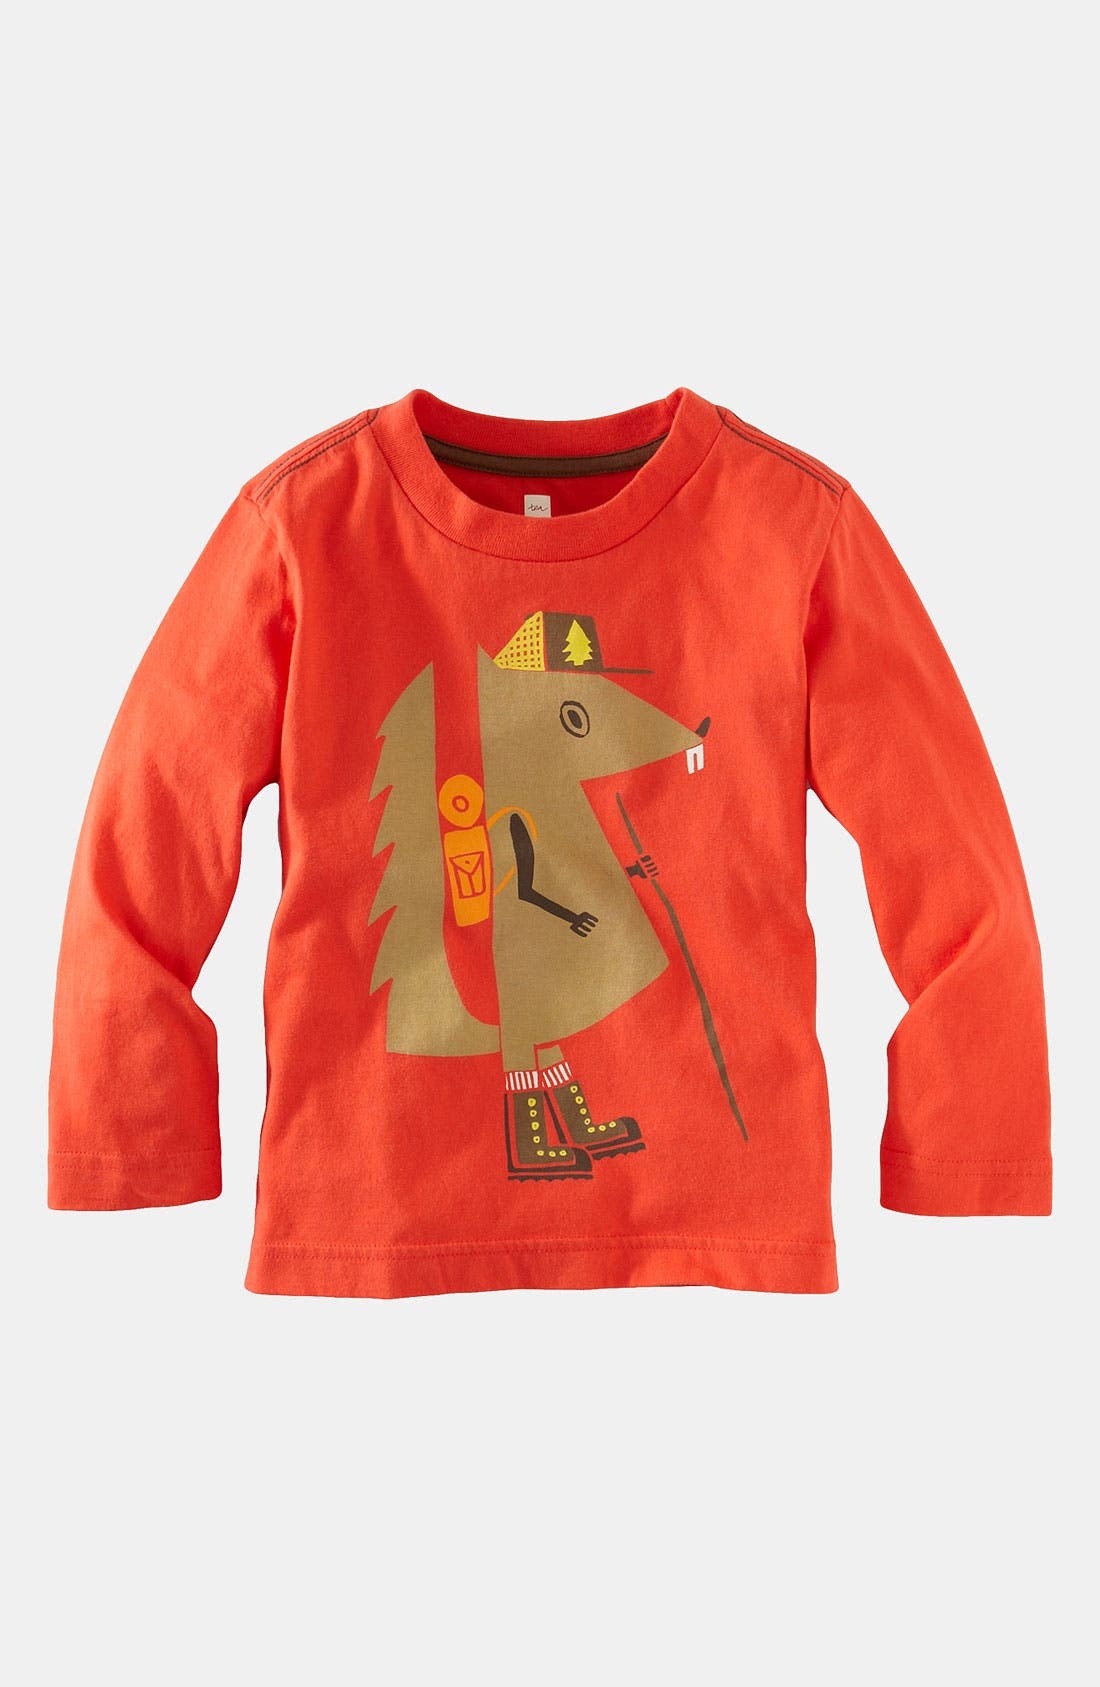 Alternate Image 1 Selected - Tea Collection 'Wanderer' T-Shirt (Toddler)